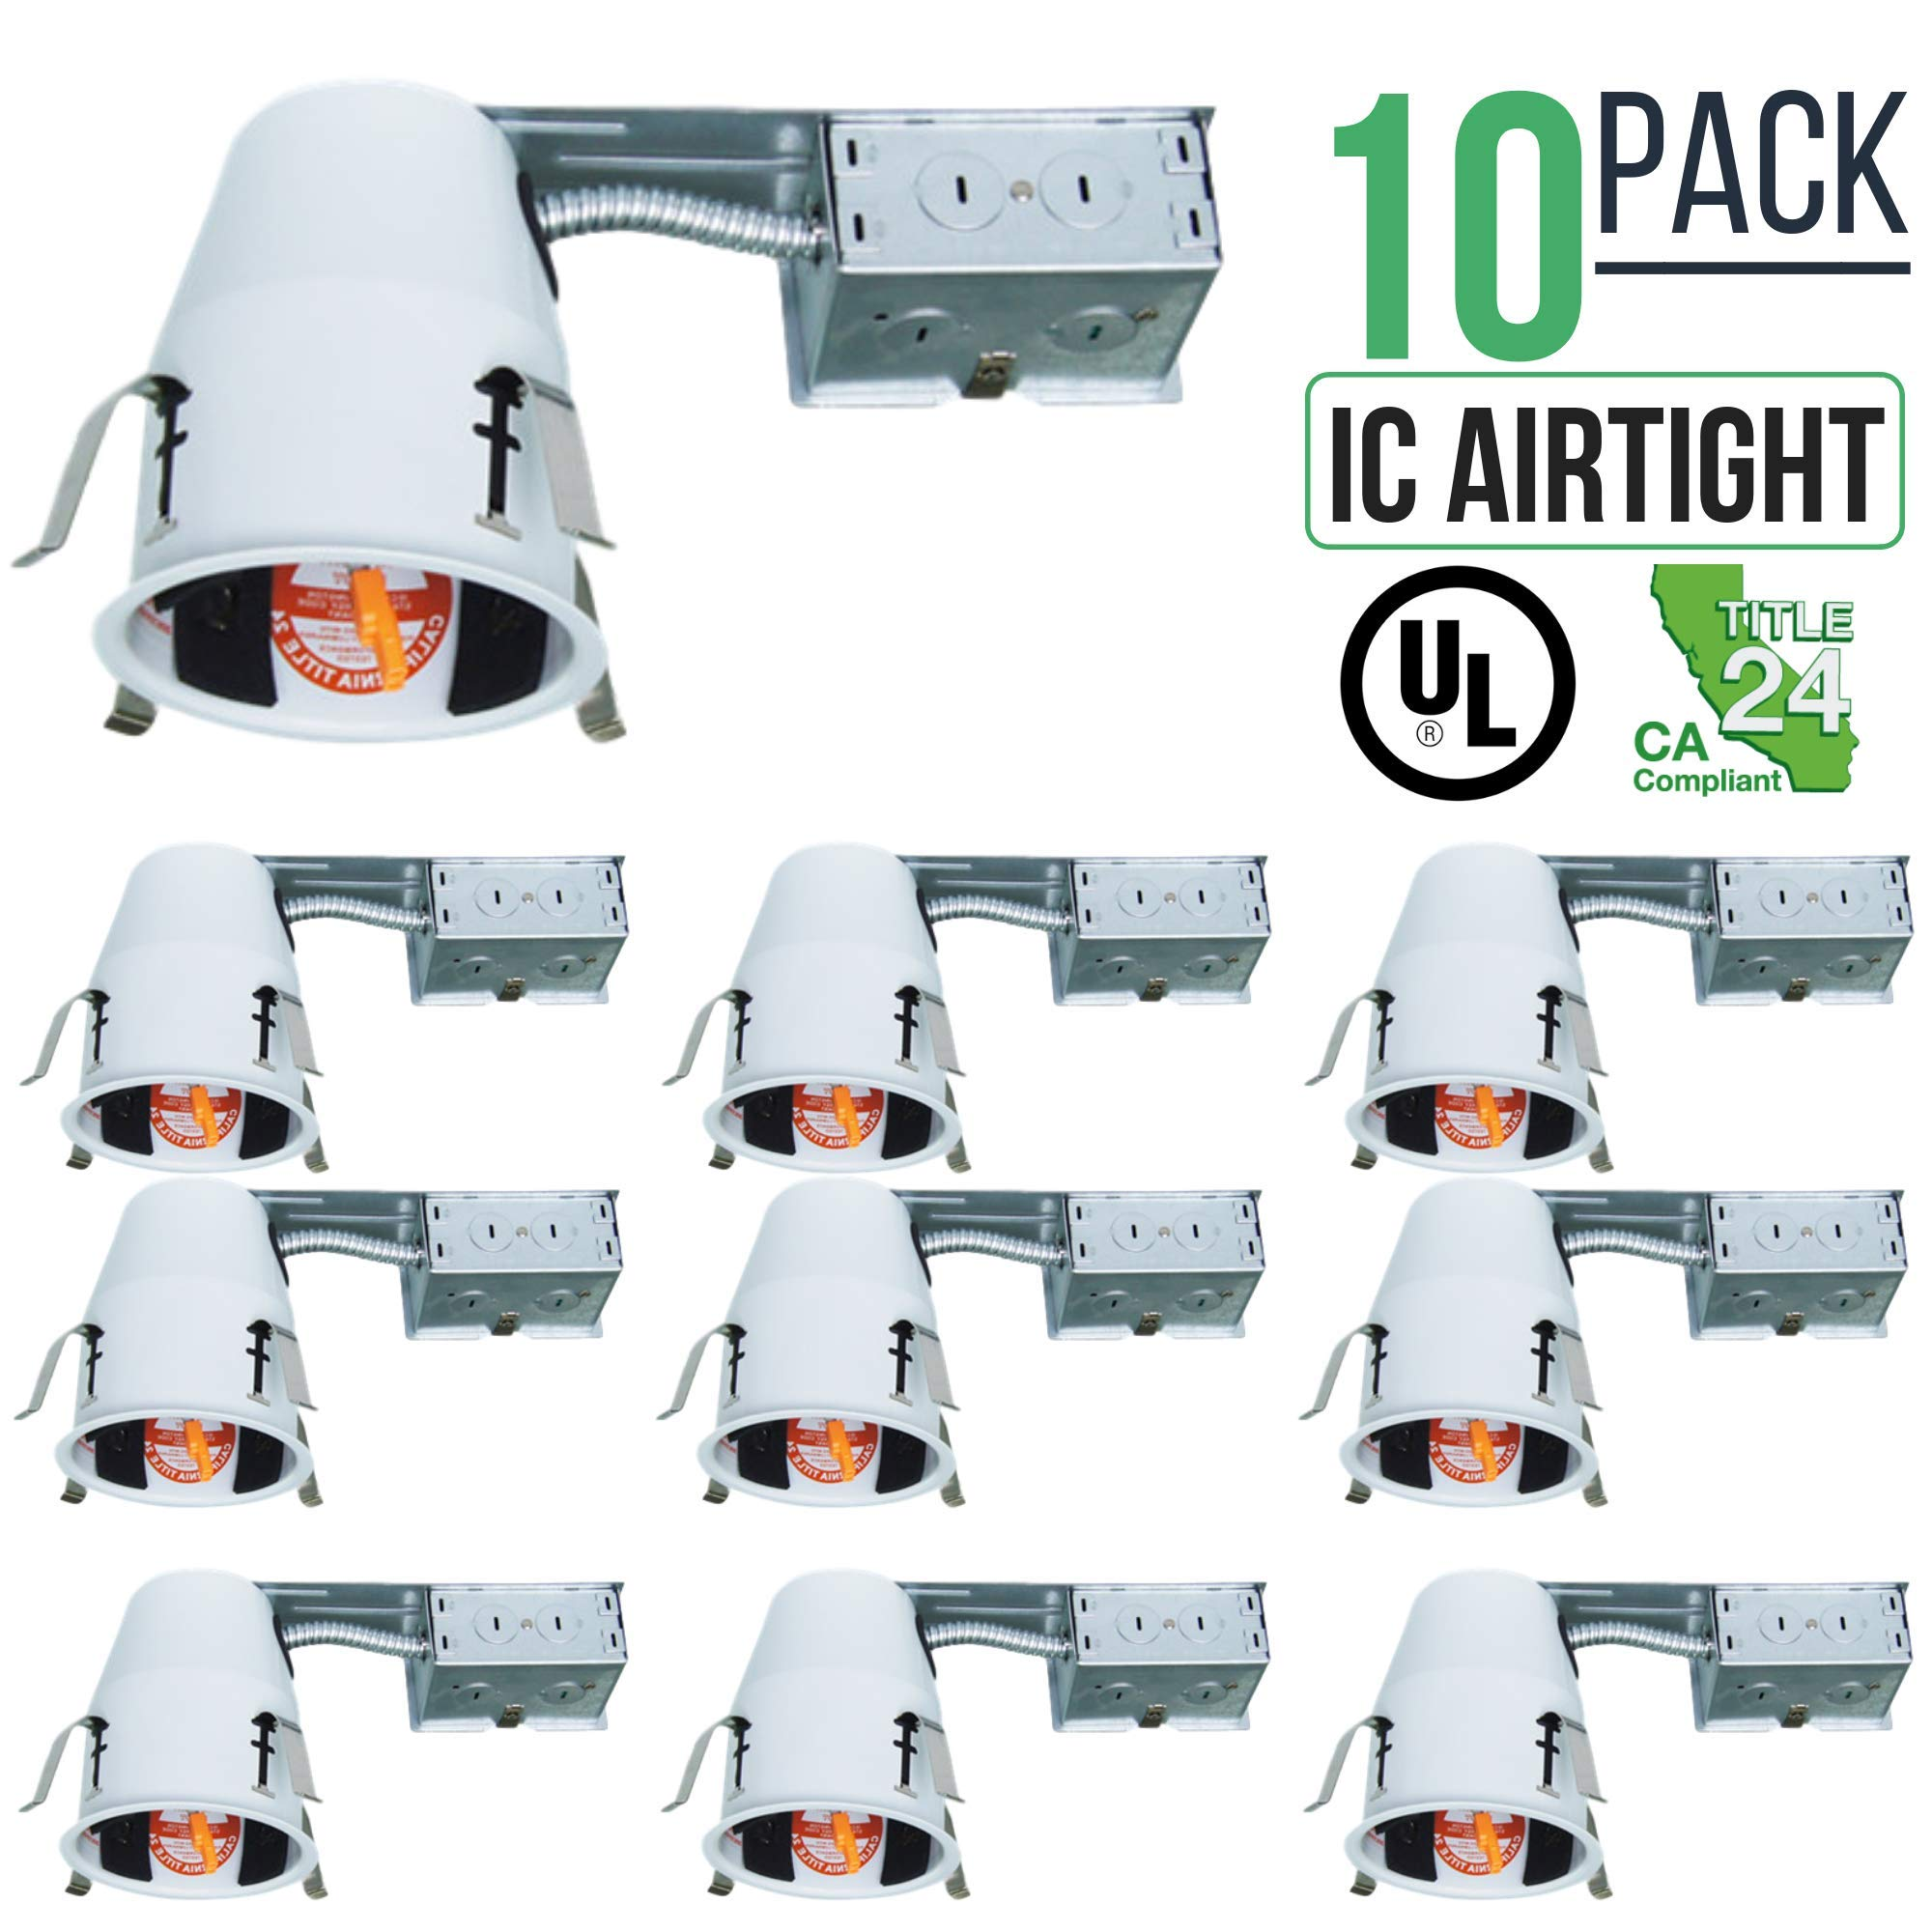 4'' Inch Remodel LED Recessed Can Housing Air Tight IC UL Listed and Title 24 Certified Four Bros Lighting (10 Pack)